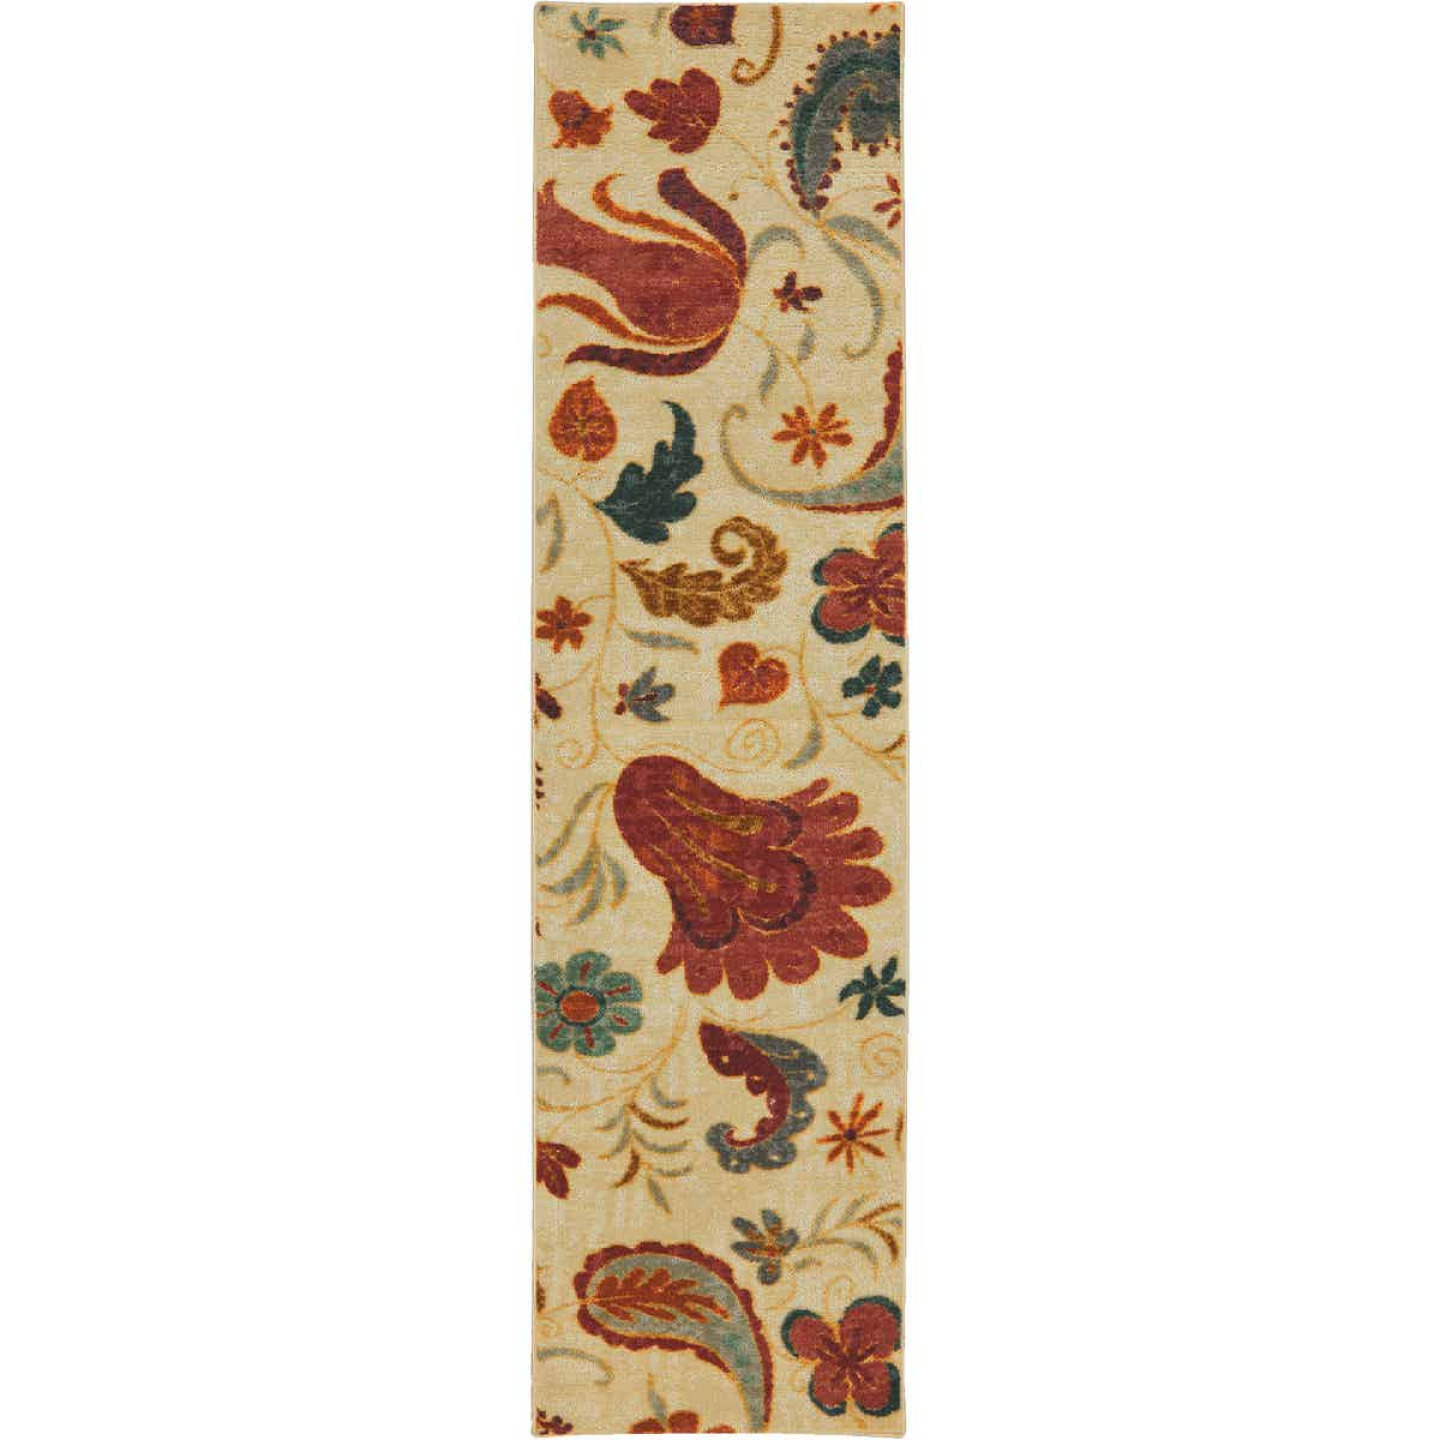 Mohawk Home Tropical Acres 2 Ft. x 8 Ft. Runner Rug Image 1